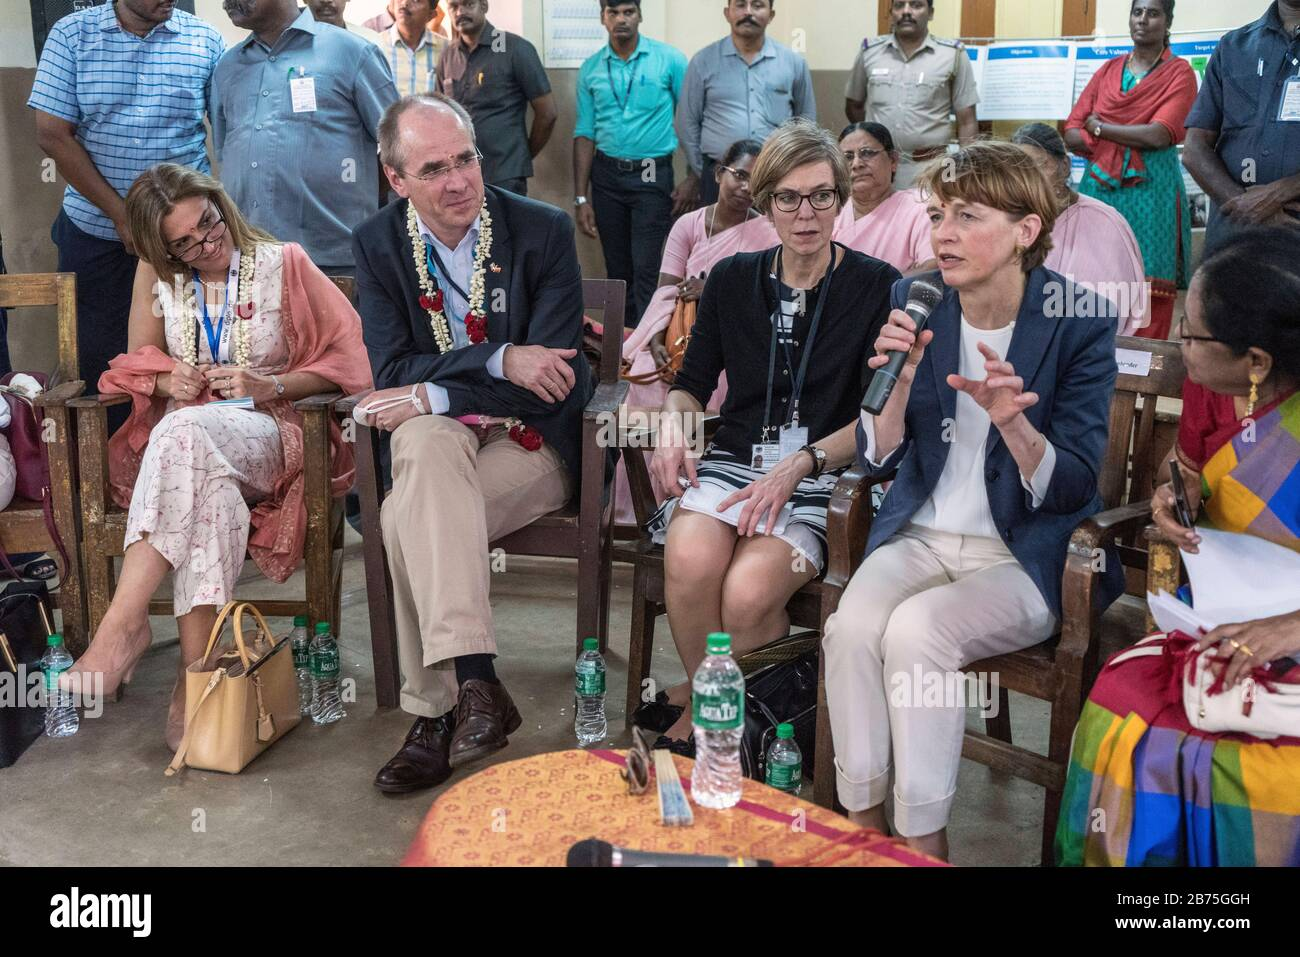 """India, Chennai, 25.03.2018. Trip of the German President and Ms. Buedenbender to the Republic of India from 21-26.03.2018. Ms. Buedenbender will visit the Unicef project """"Arunodhaya Centre for Street and Working Children"""" on 25.03.2018. Didem Atahan-Fabig (left), psychologist and wife of the German Consul General in Chennai and Christian Schneider Managing Director of Unicef Germany, Perry Notbohm-Ruh, interpreter and Elke Bedenbender, lawyer and wife of the German President. [automated translation] Stock Photo"""